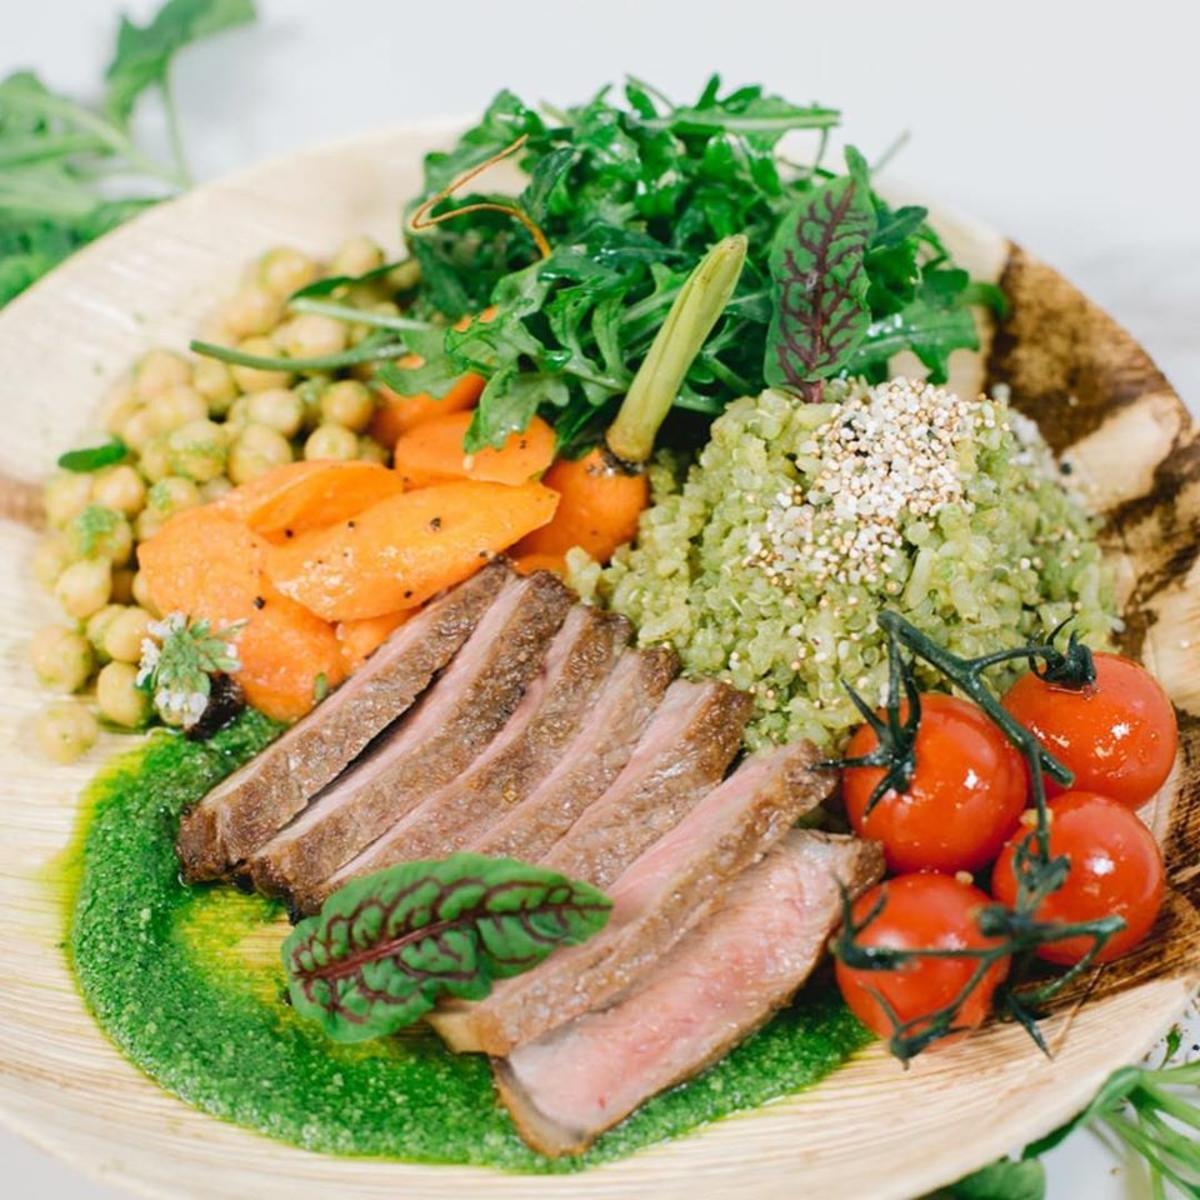 A plated dish from Sea Salt Healthy Kitchen on St. Simons Island, GA